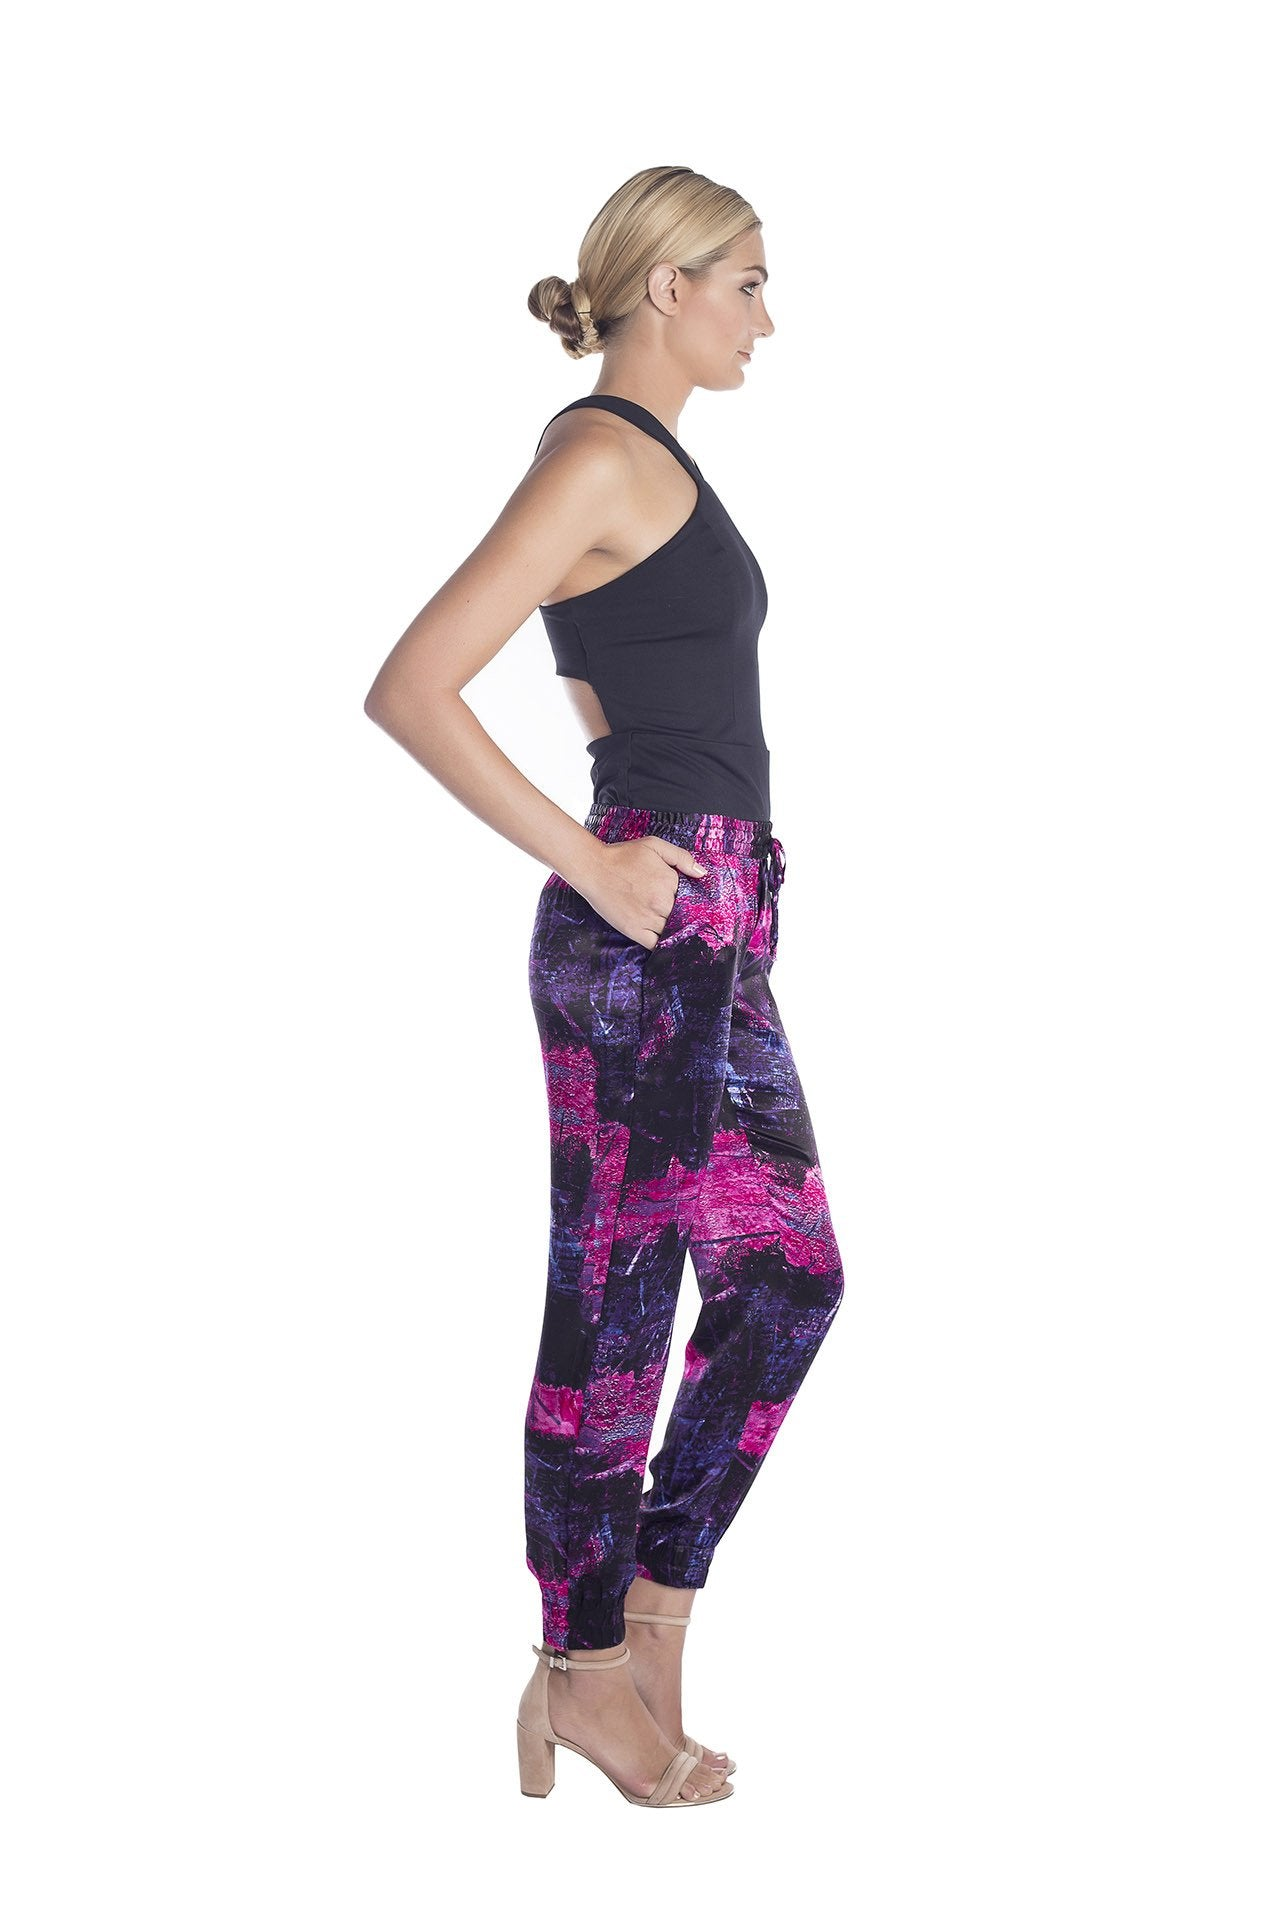 Side view of trendy women jogger pants with magenta, purple and black art by artist Damian Stamer